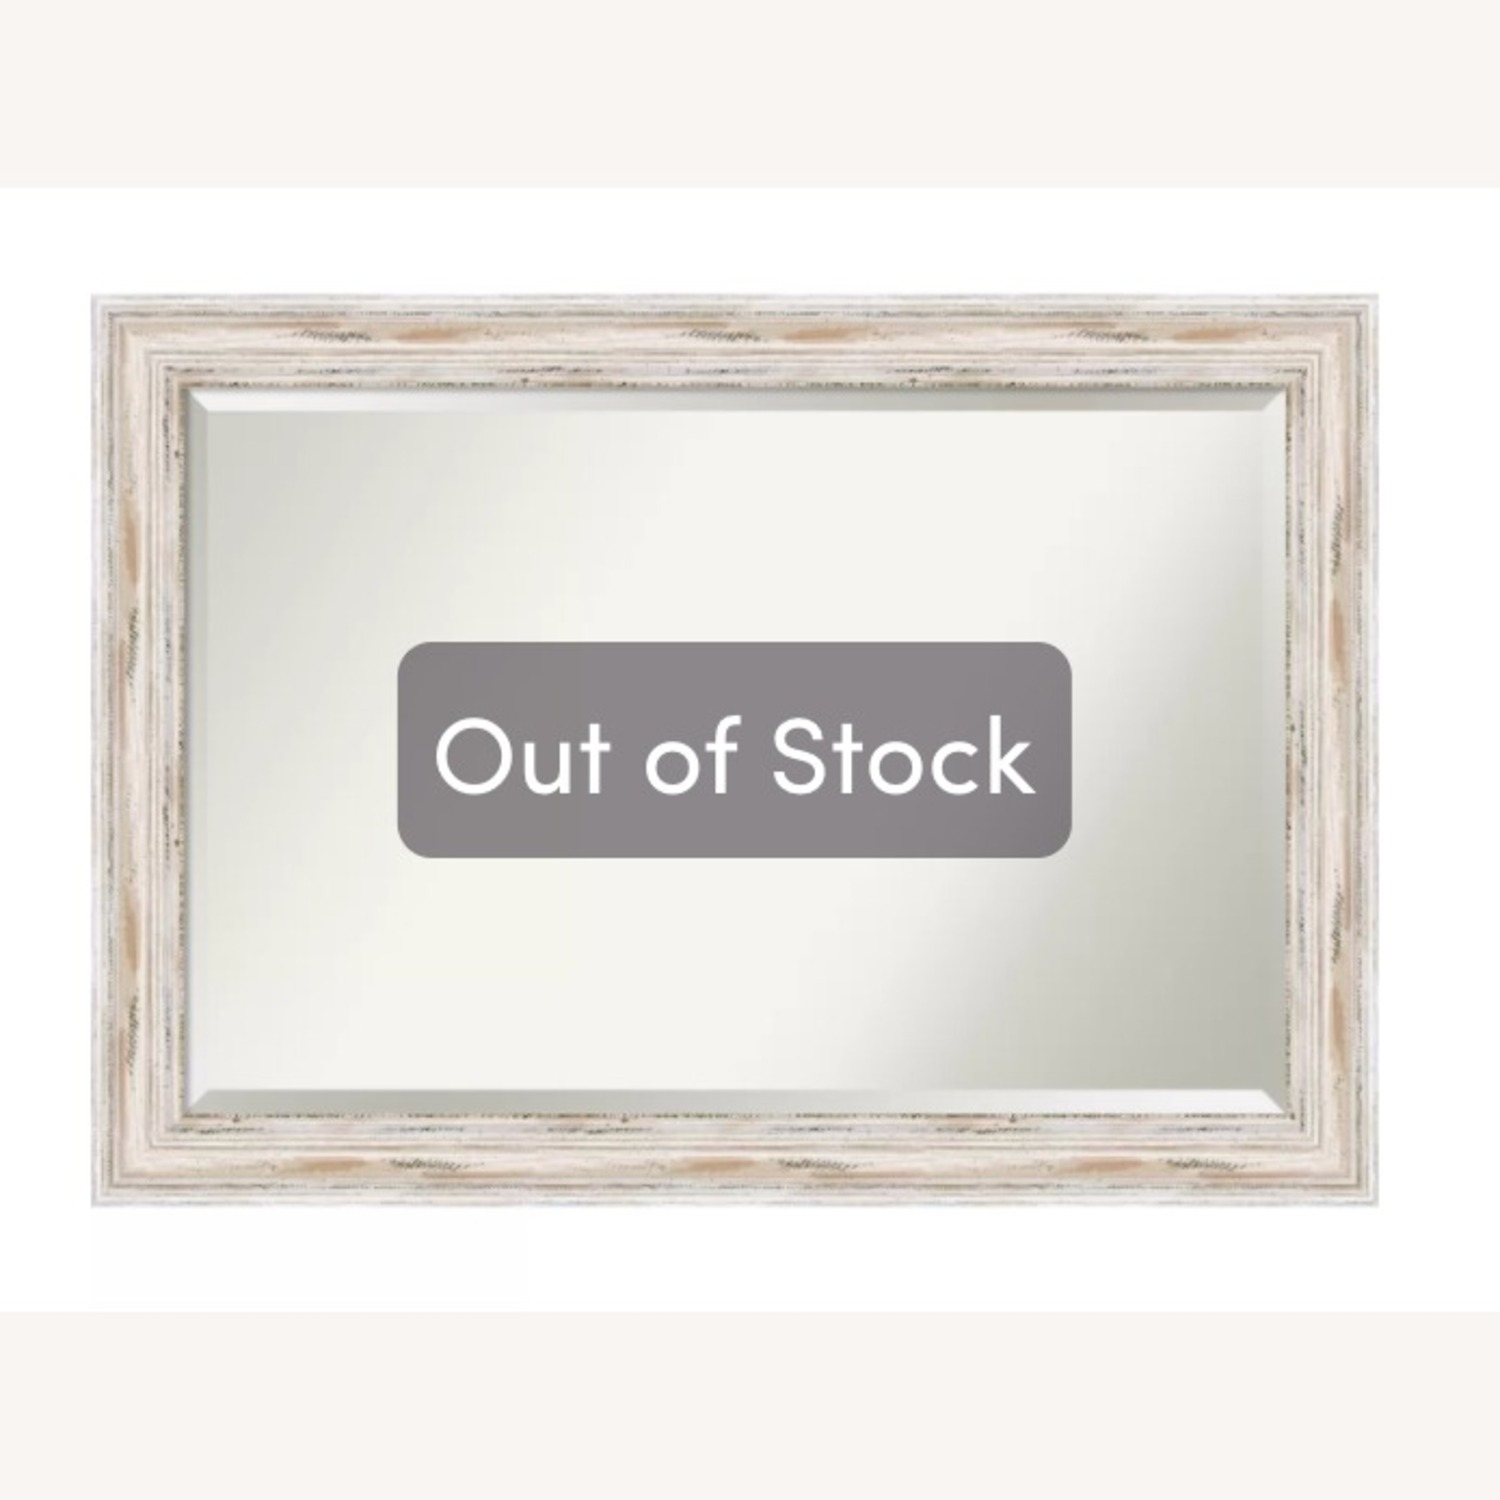 Wayfair White Speckled Wood Wall Mirror - image-3